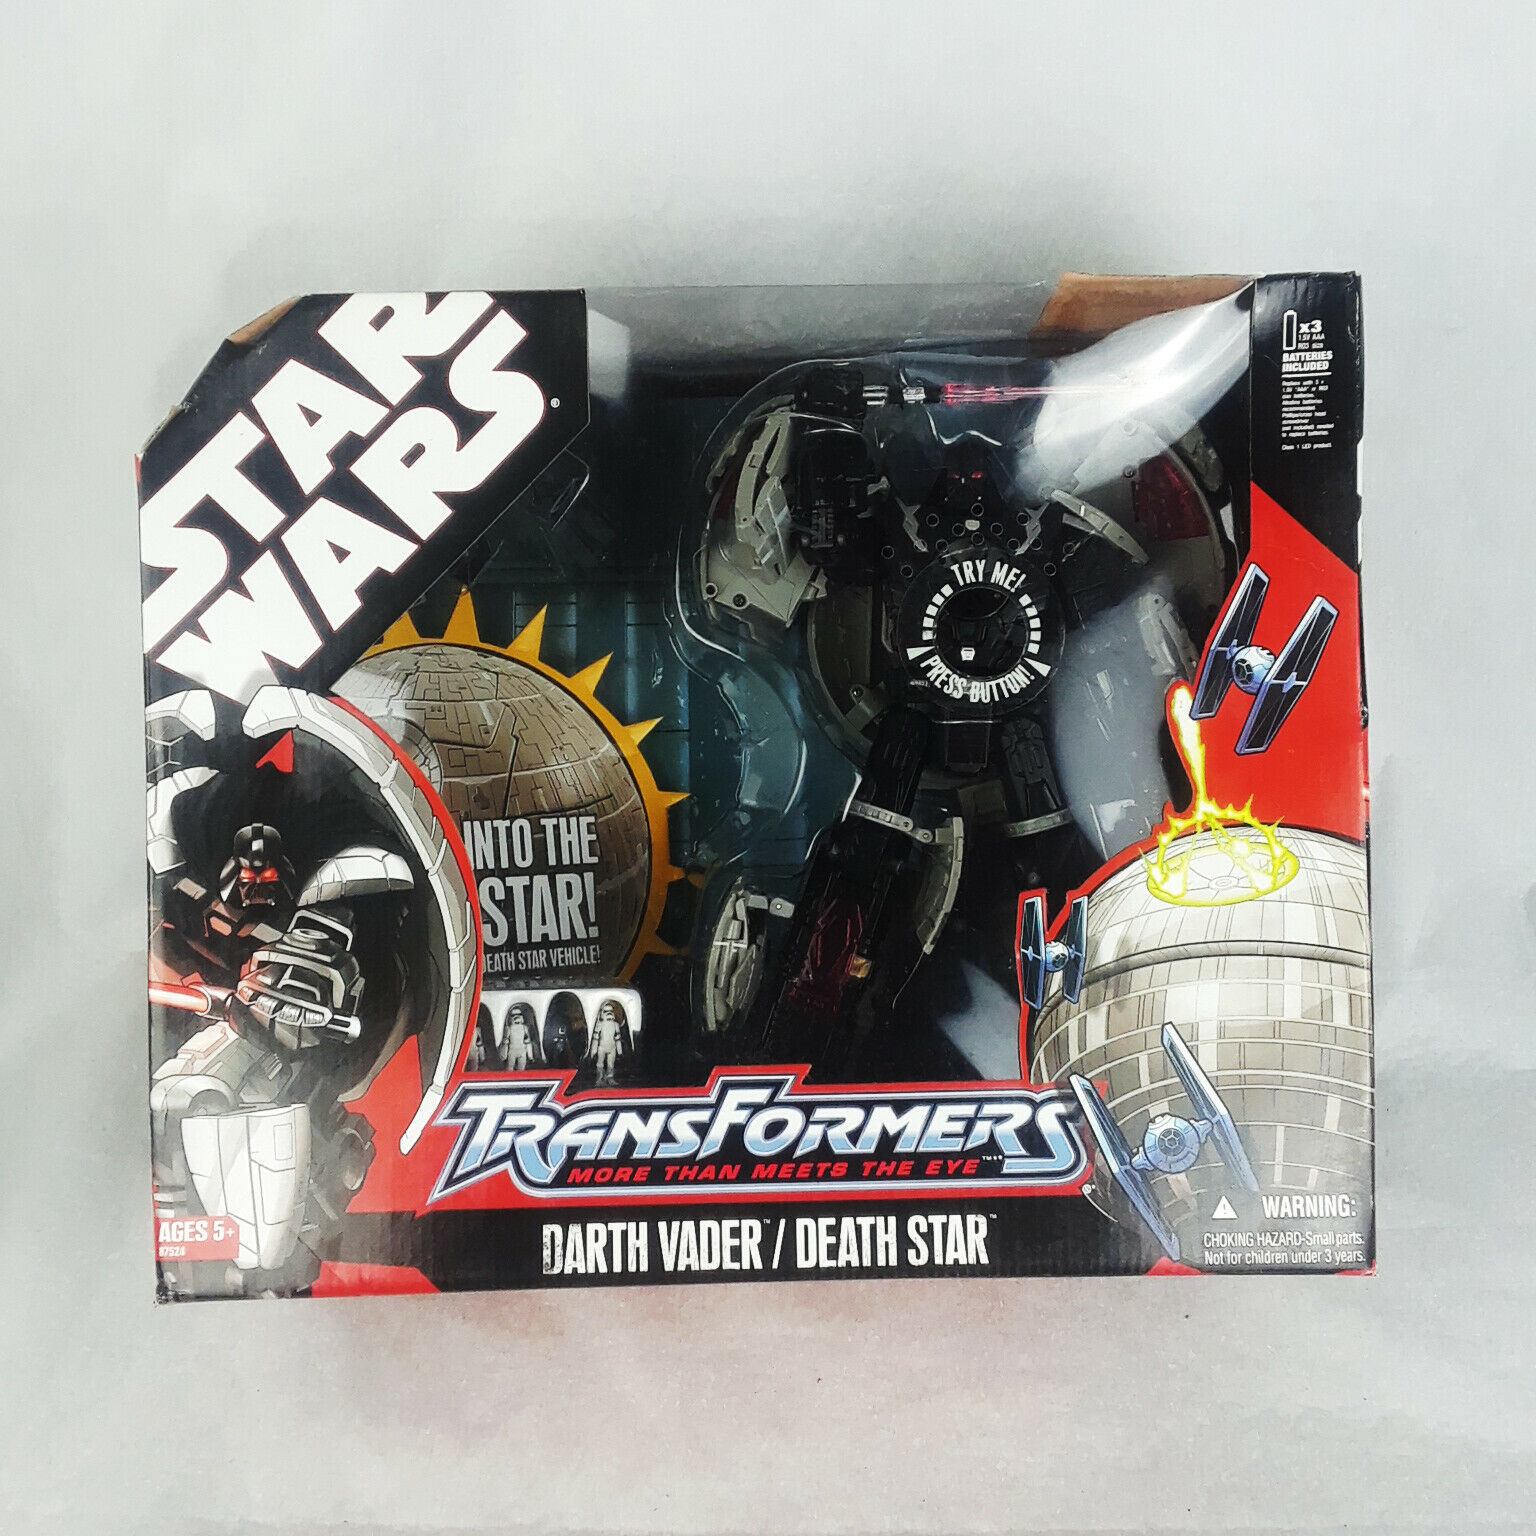 Star Wars Transformers Darth Vader / Death Star Action Figure by Hasbro